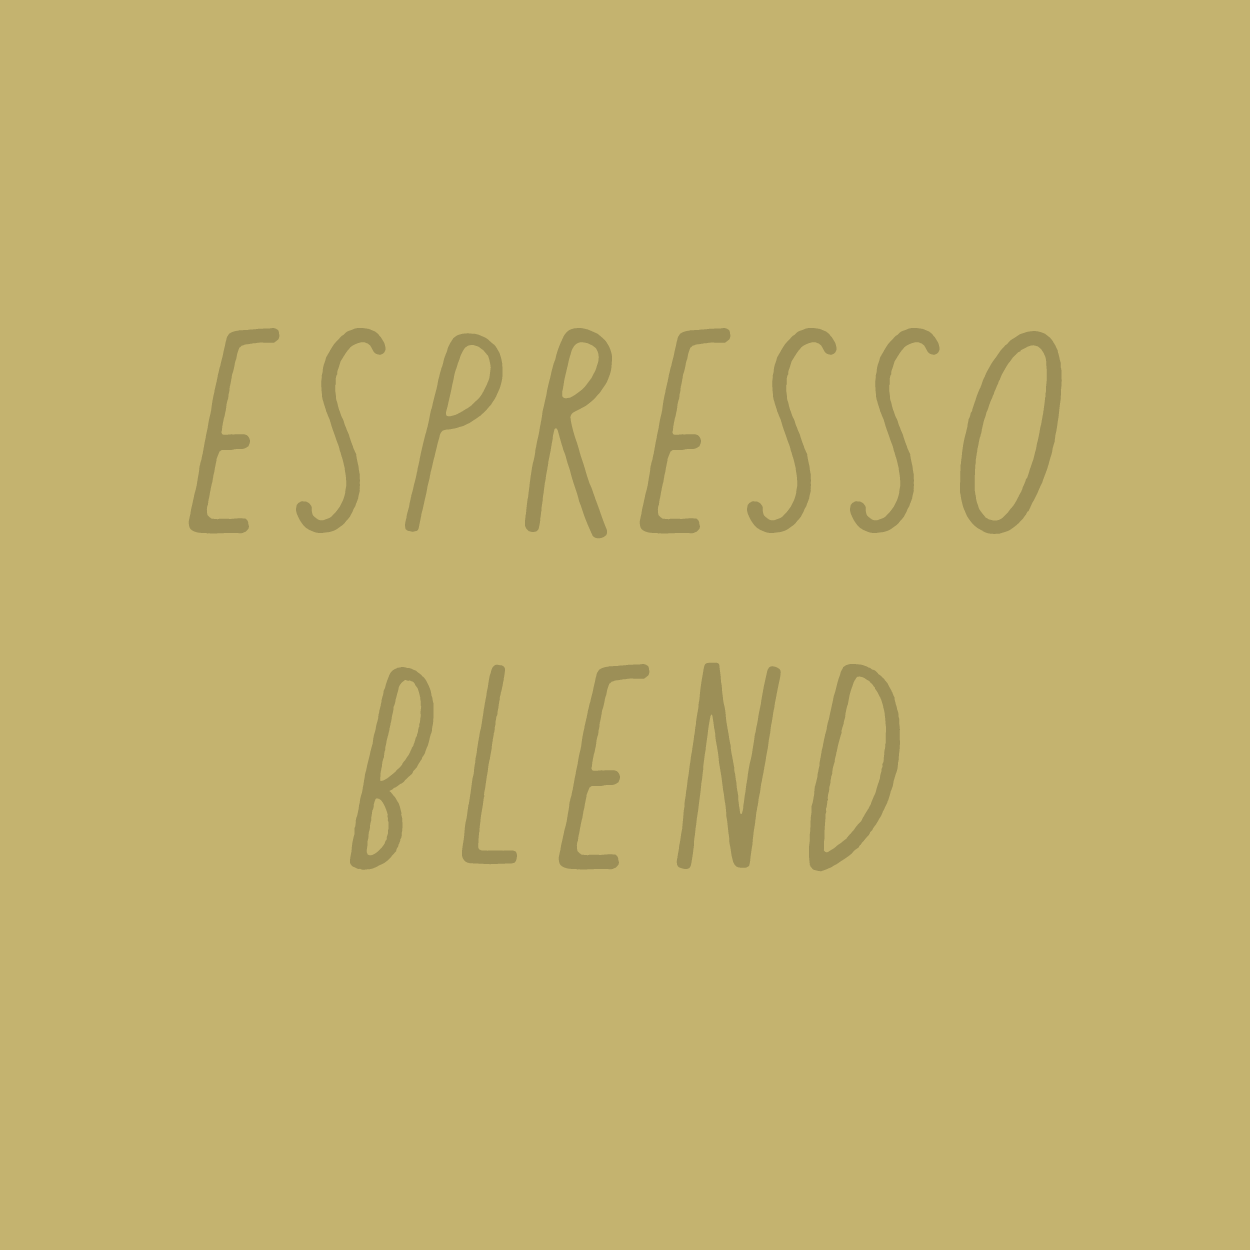 espresso_office.png